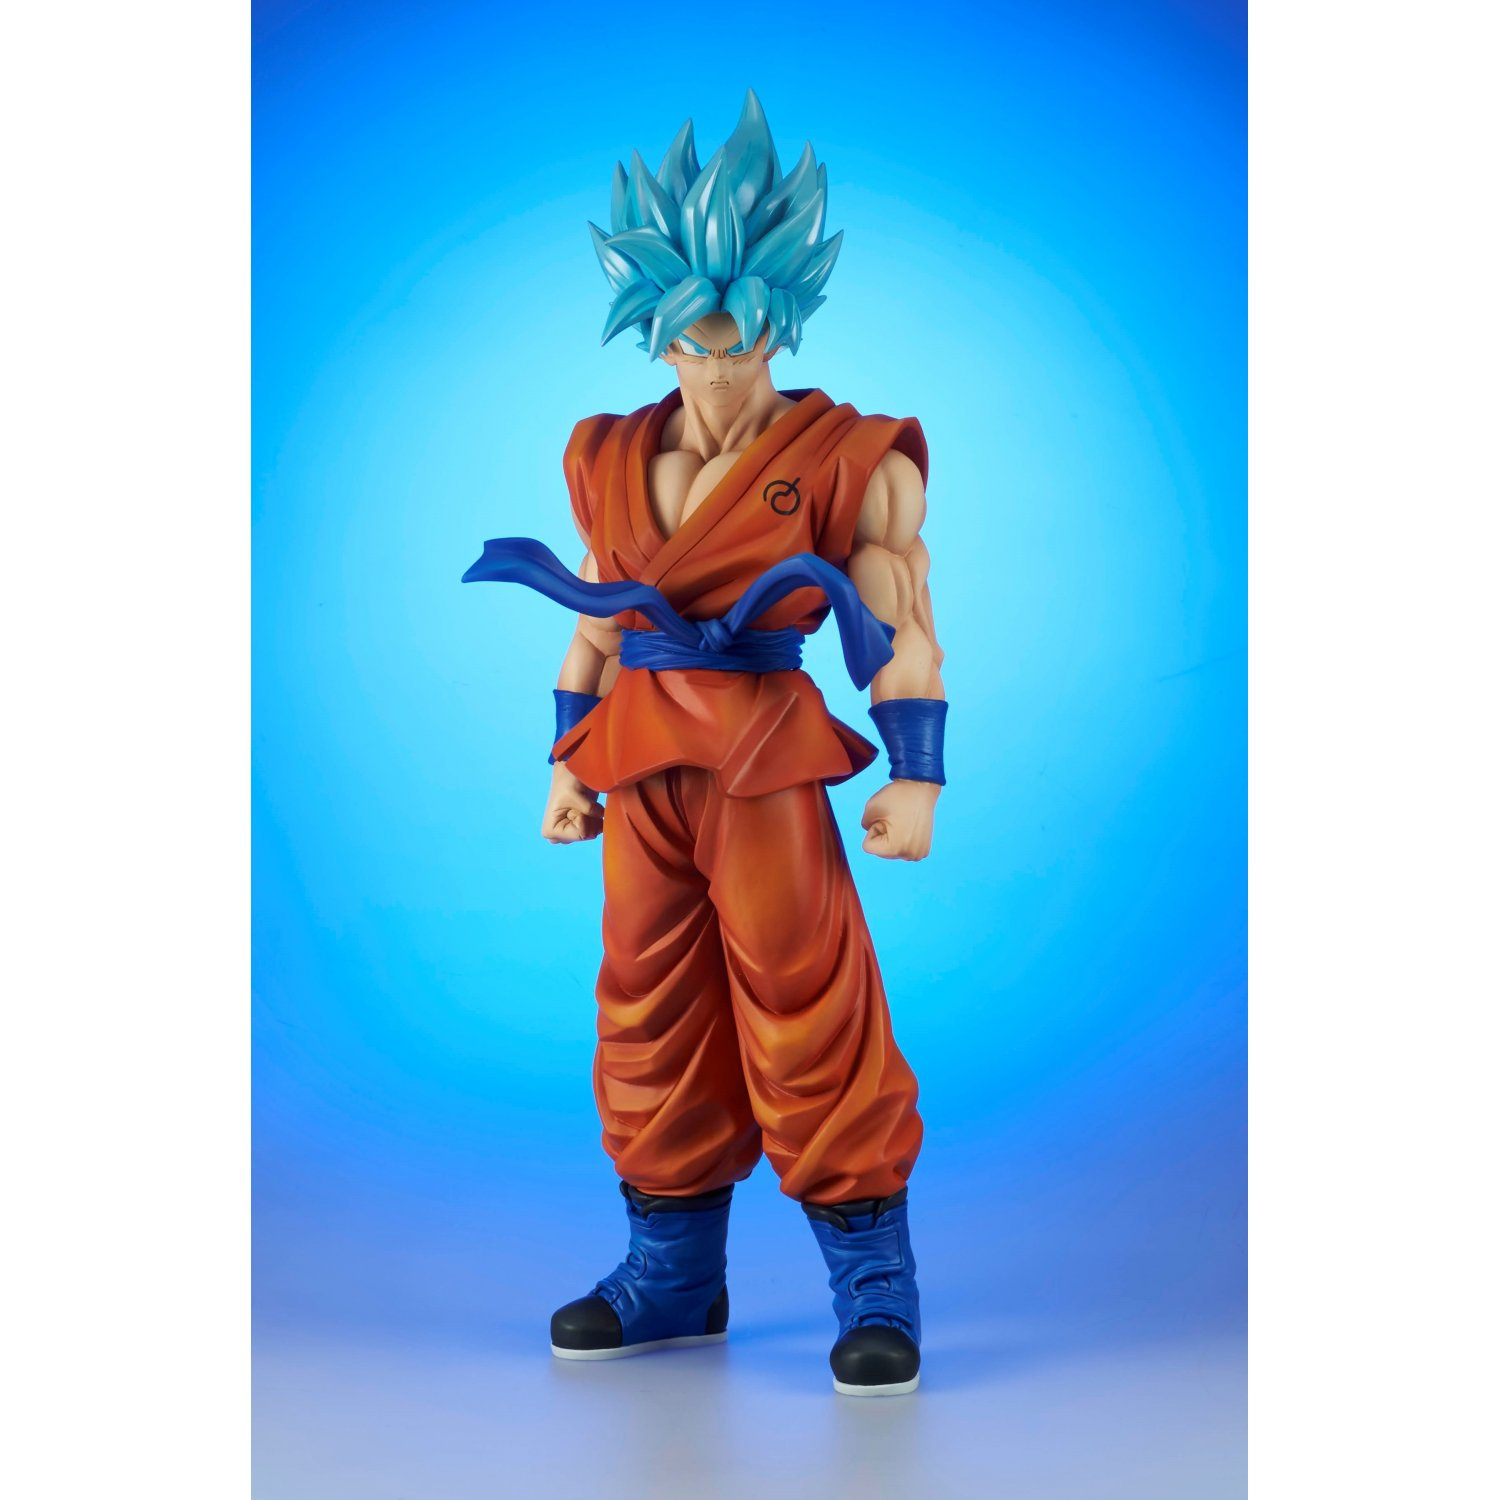 Goku Gigantic Figures: Super Saiyan God To Go On Sale March 2017